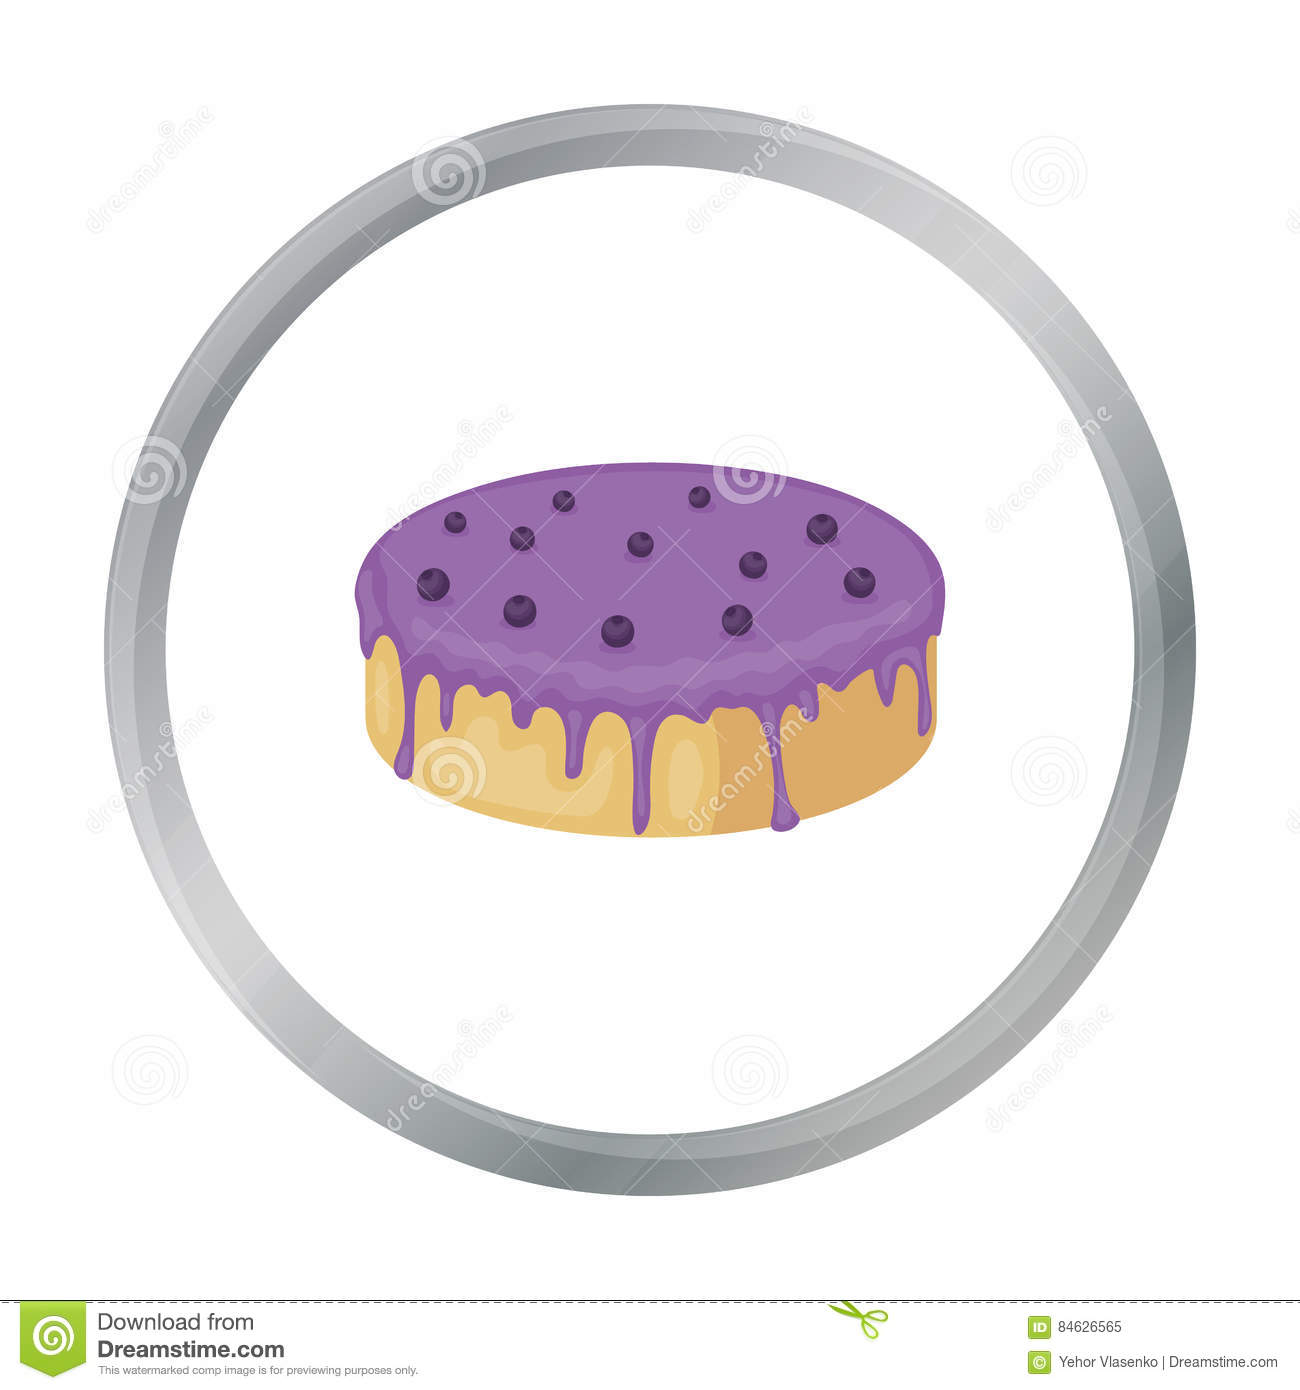 Bilberry Cake Icon In Cartoon Style Isolated On White Background